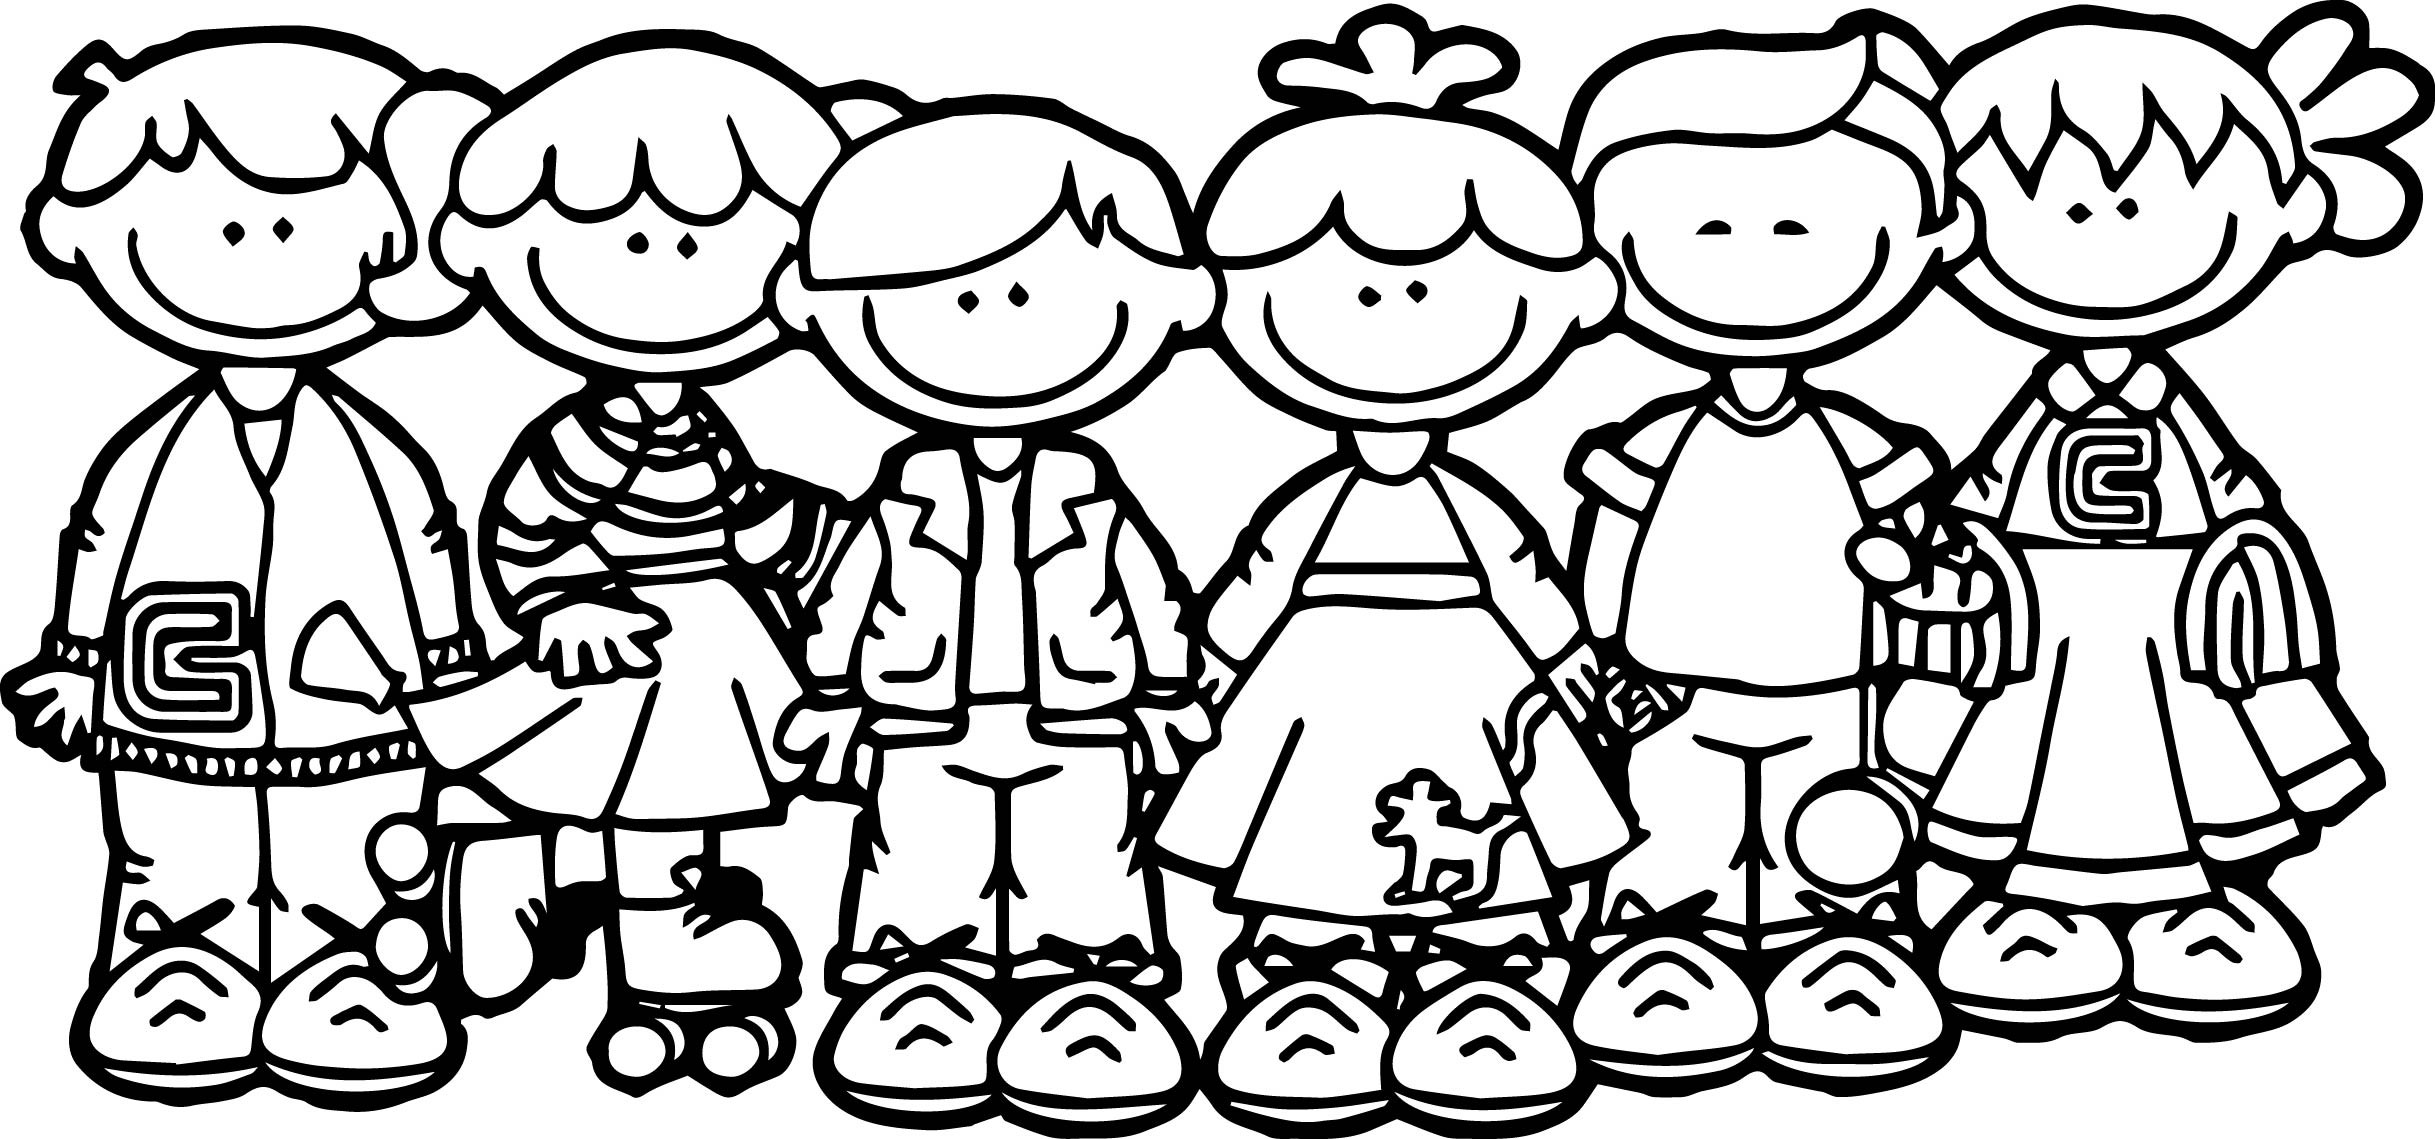 coloring school for kids kids going to school kids coloring page wecoloringpagecom kids coloring school for